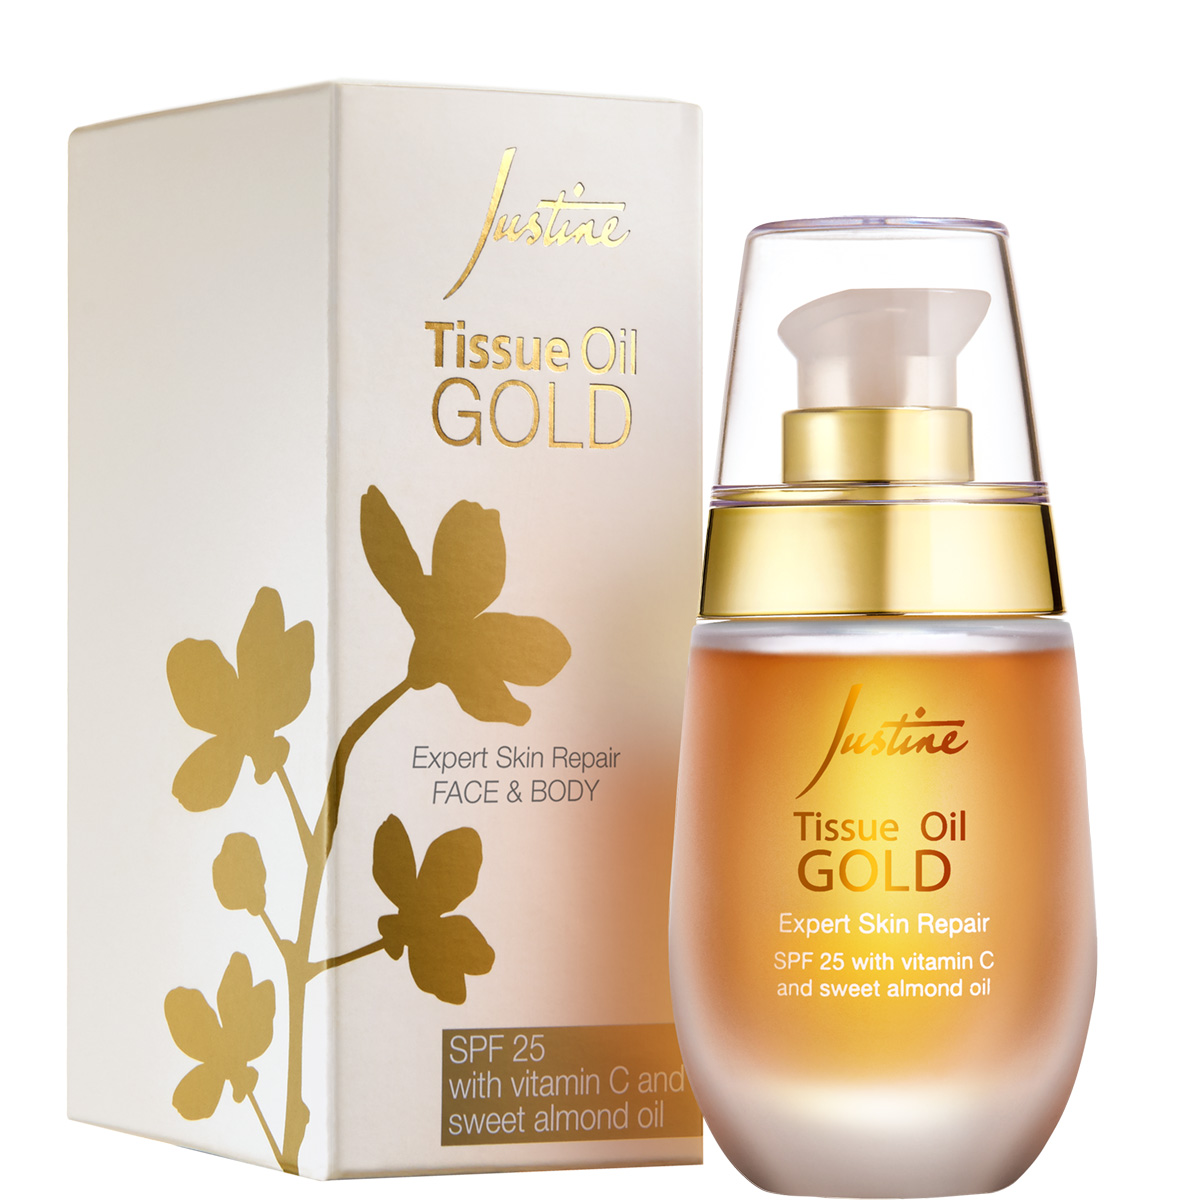 Justine Tissue Oil Gold Face and Body SPF 25